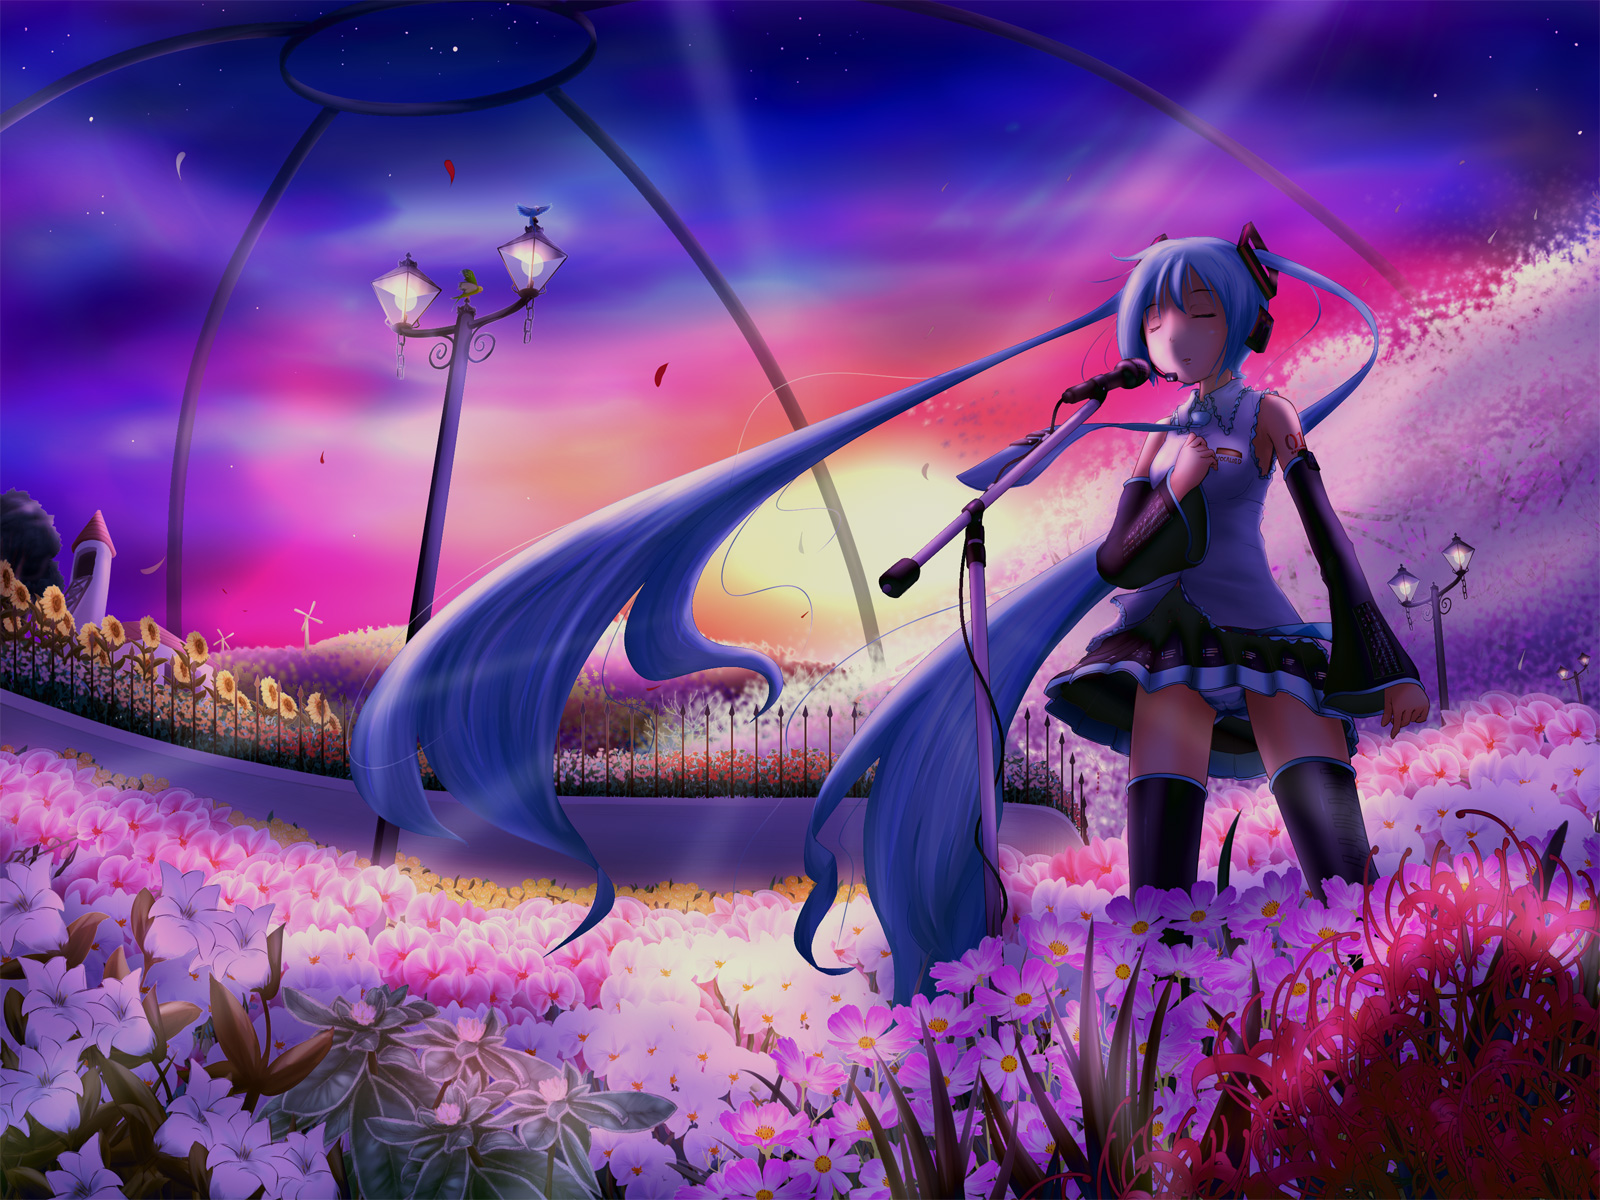 Anime - Vocaloid  - Hatsune - Miku - Miku Hatsune - Flowers Wallpaper